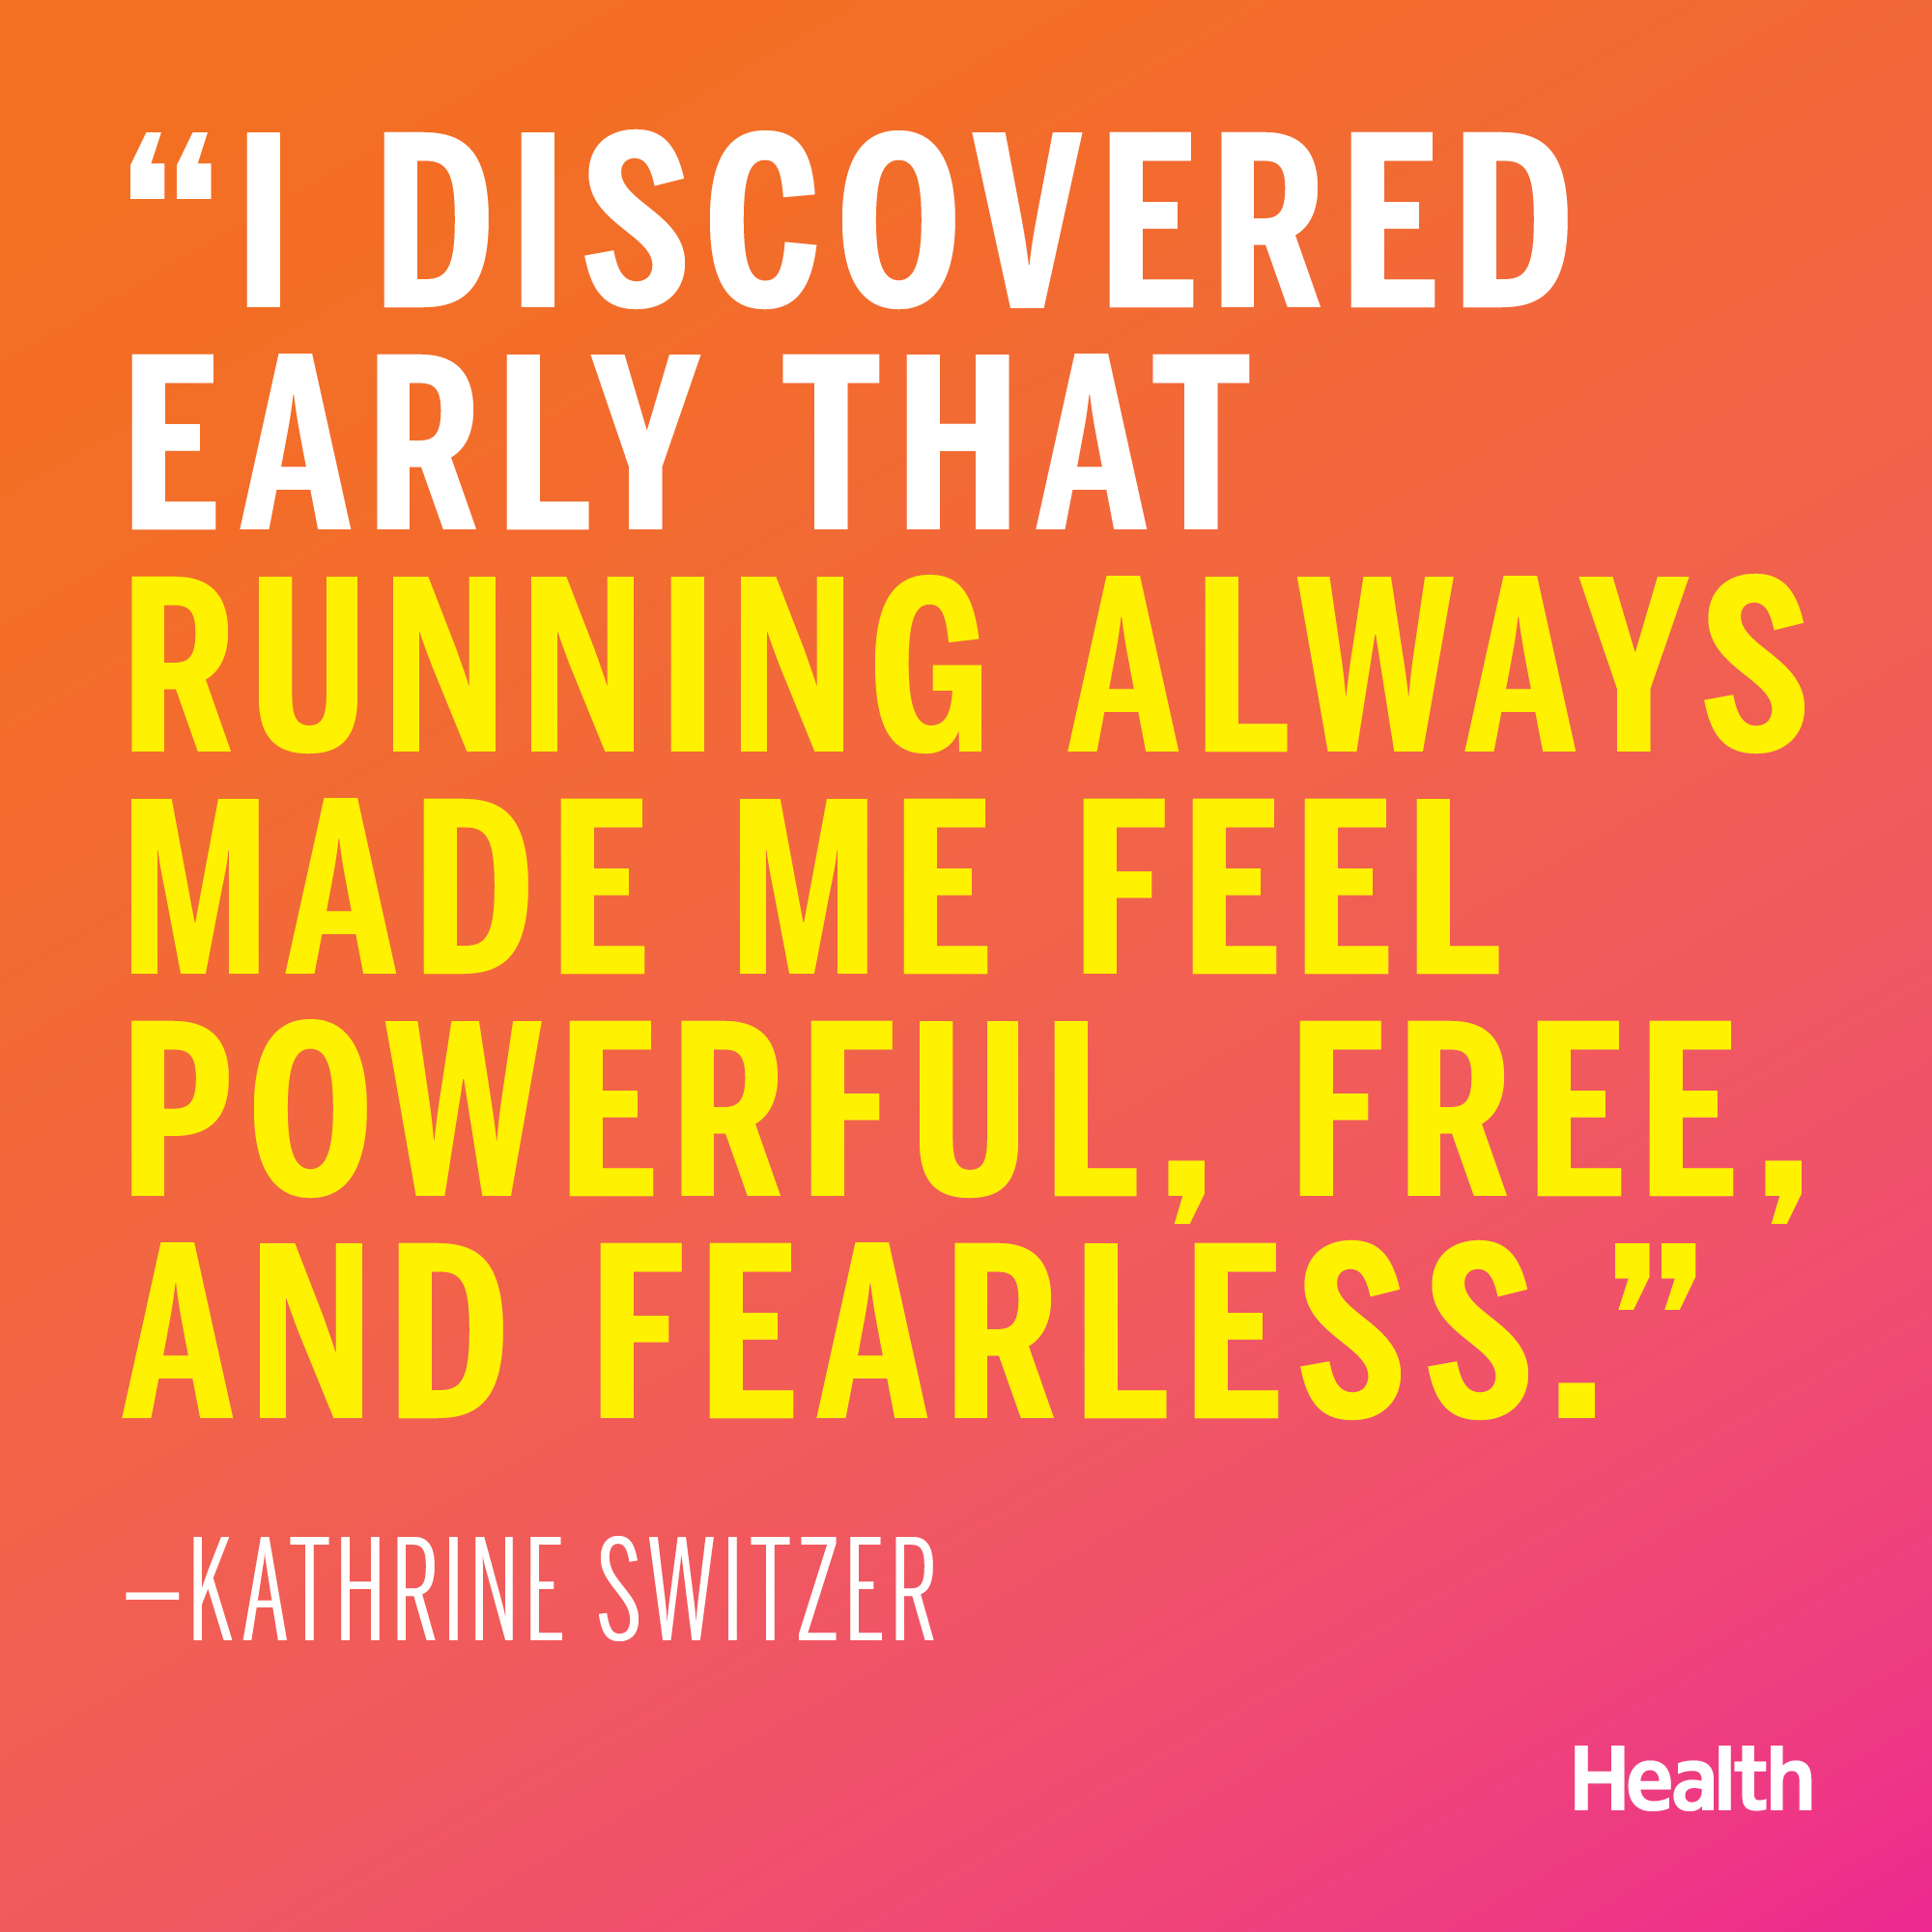 katherine-switzer-inspirational-quote